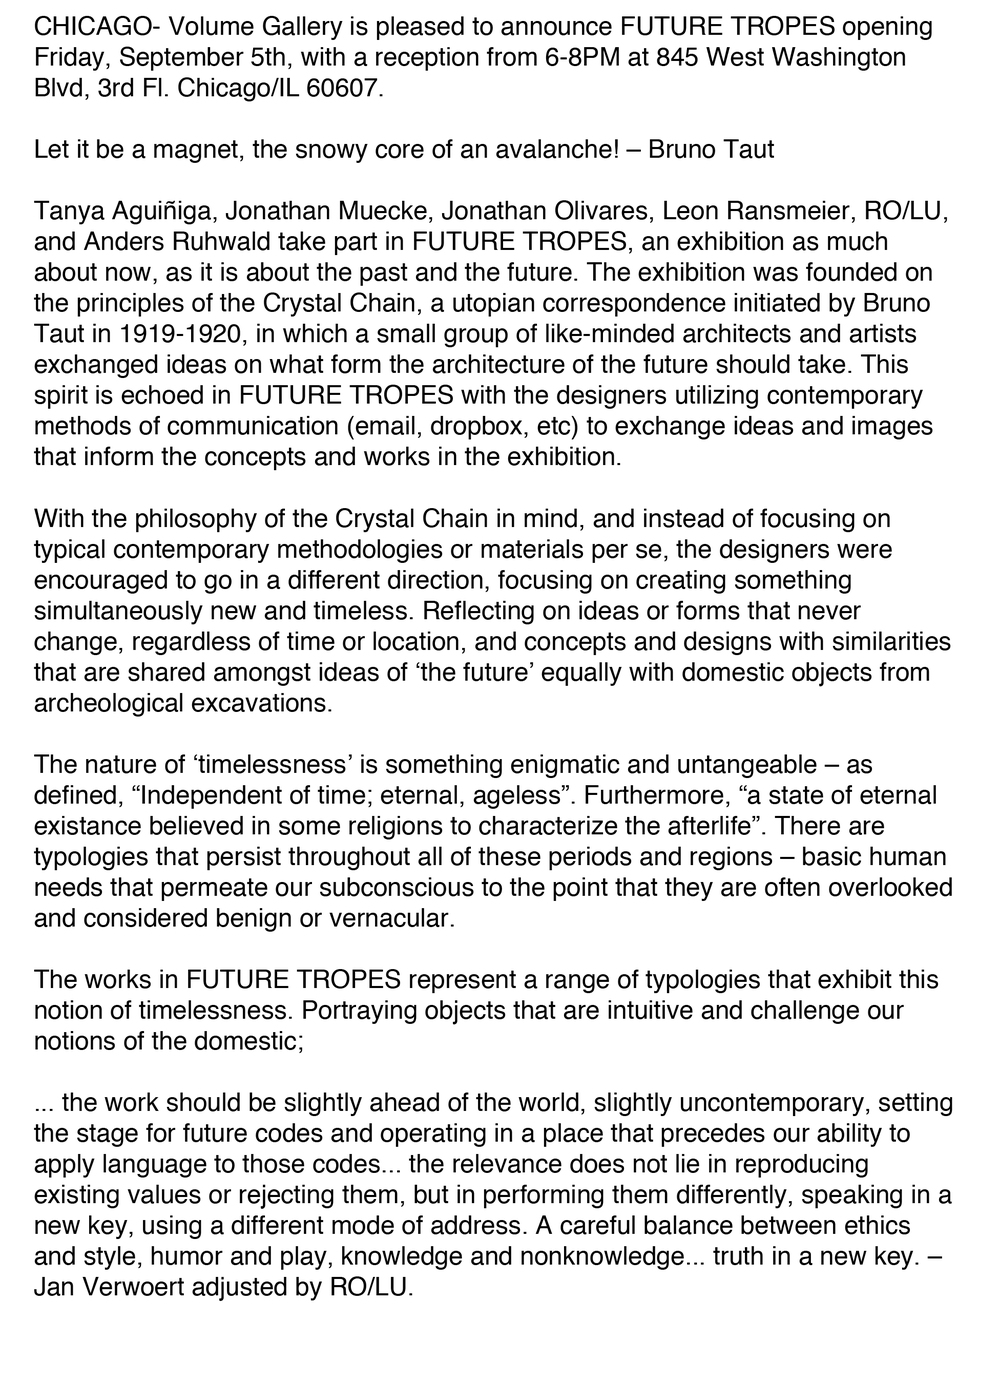 FutureTropes-PRtext-pg1.jpg